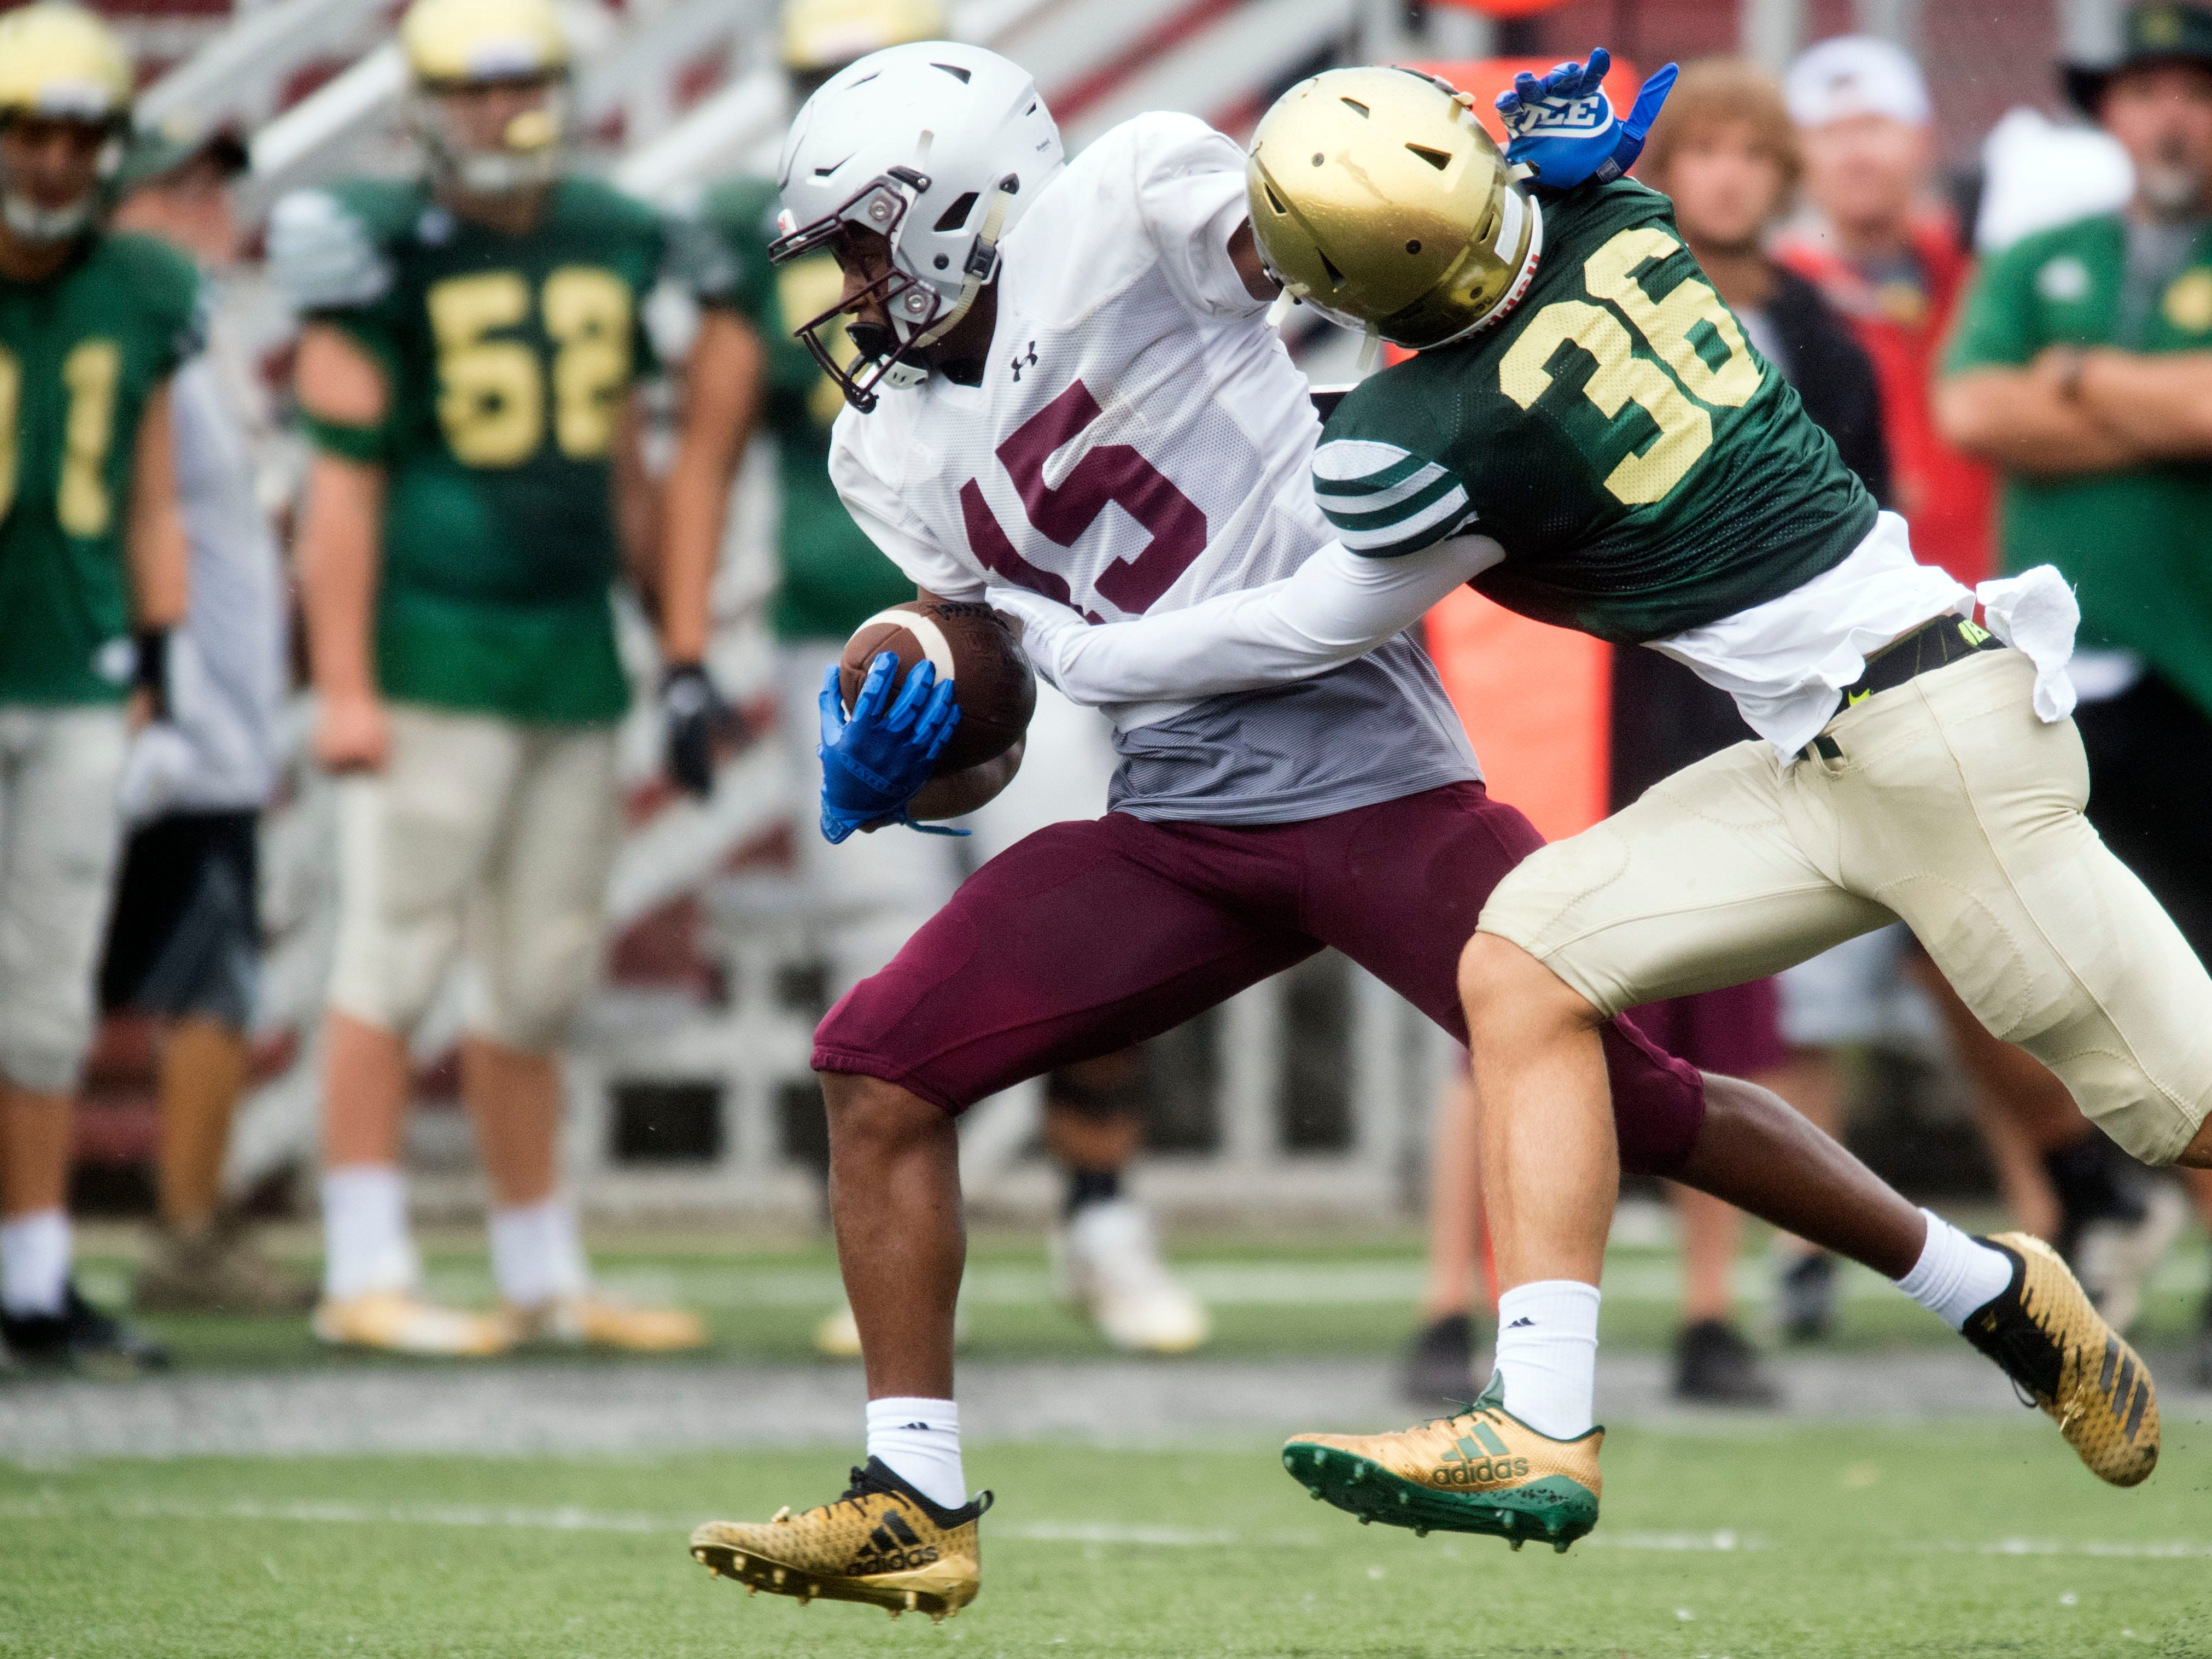 Alcoa's Ahmauud Sankey (15) is grabbed by Knoxville Catholic's Zachary Shannon (36) during a football scrimmage on Tuesday, July 31, 2018.